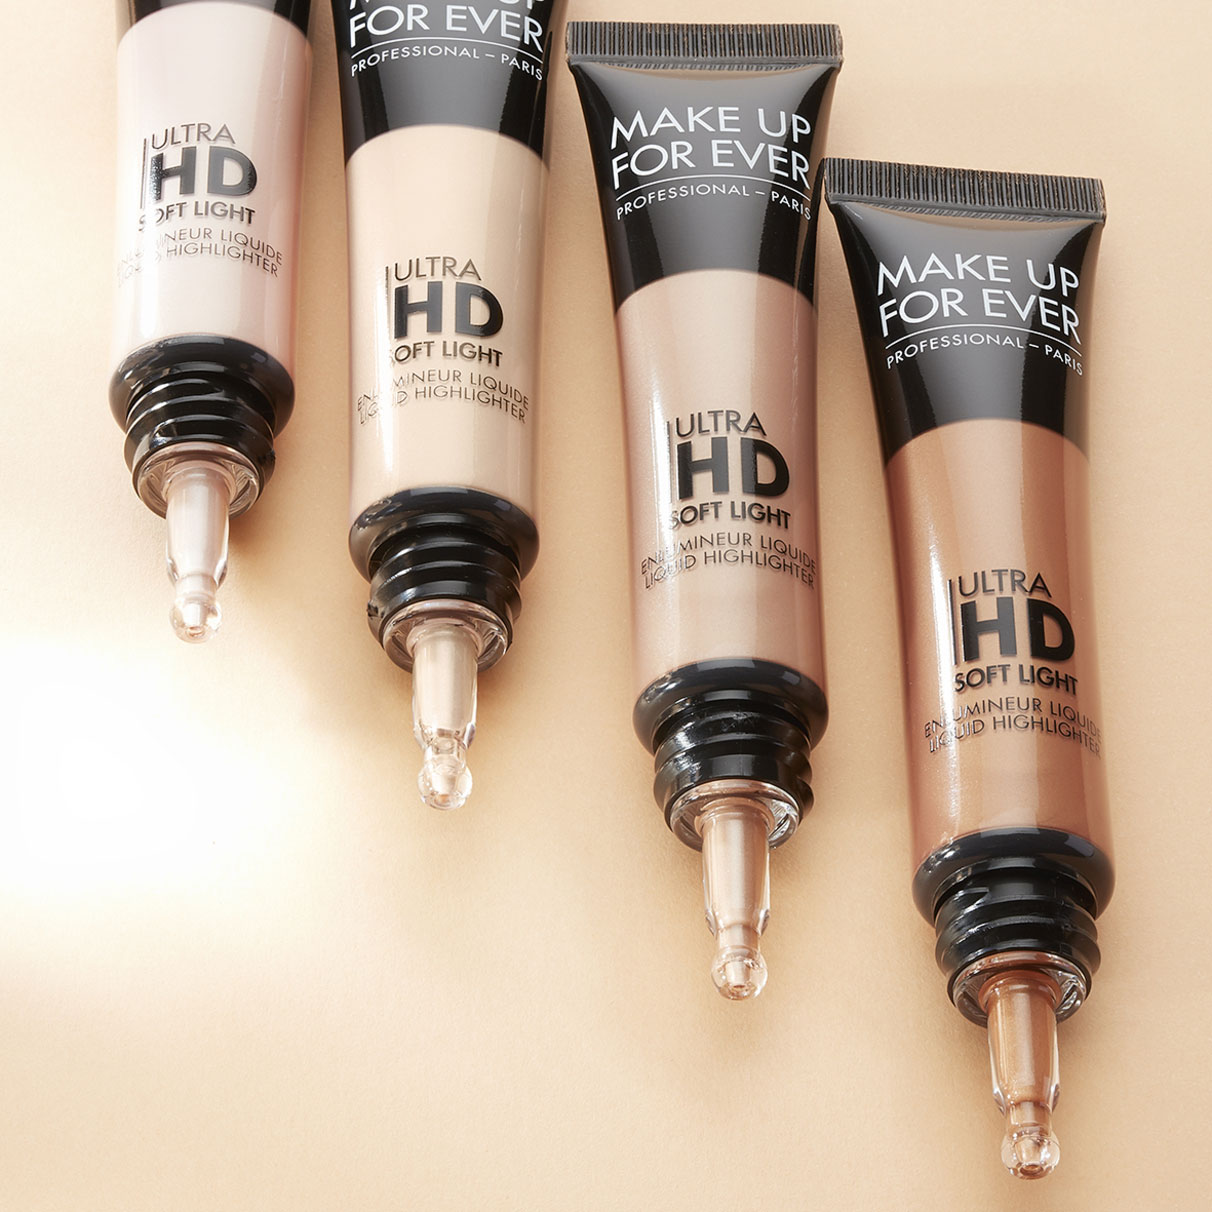 Make-Up-For-Ever-Ultra-HD-Soft-Light